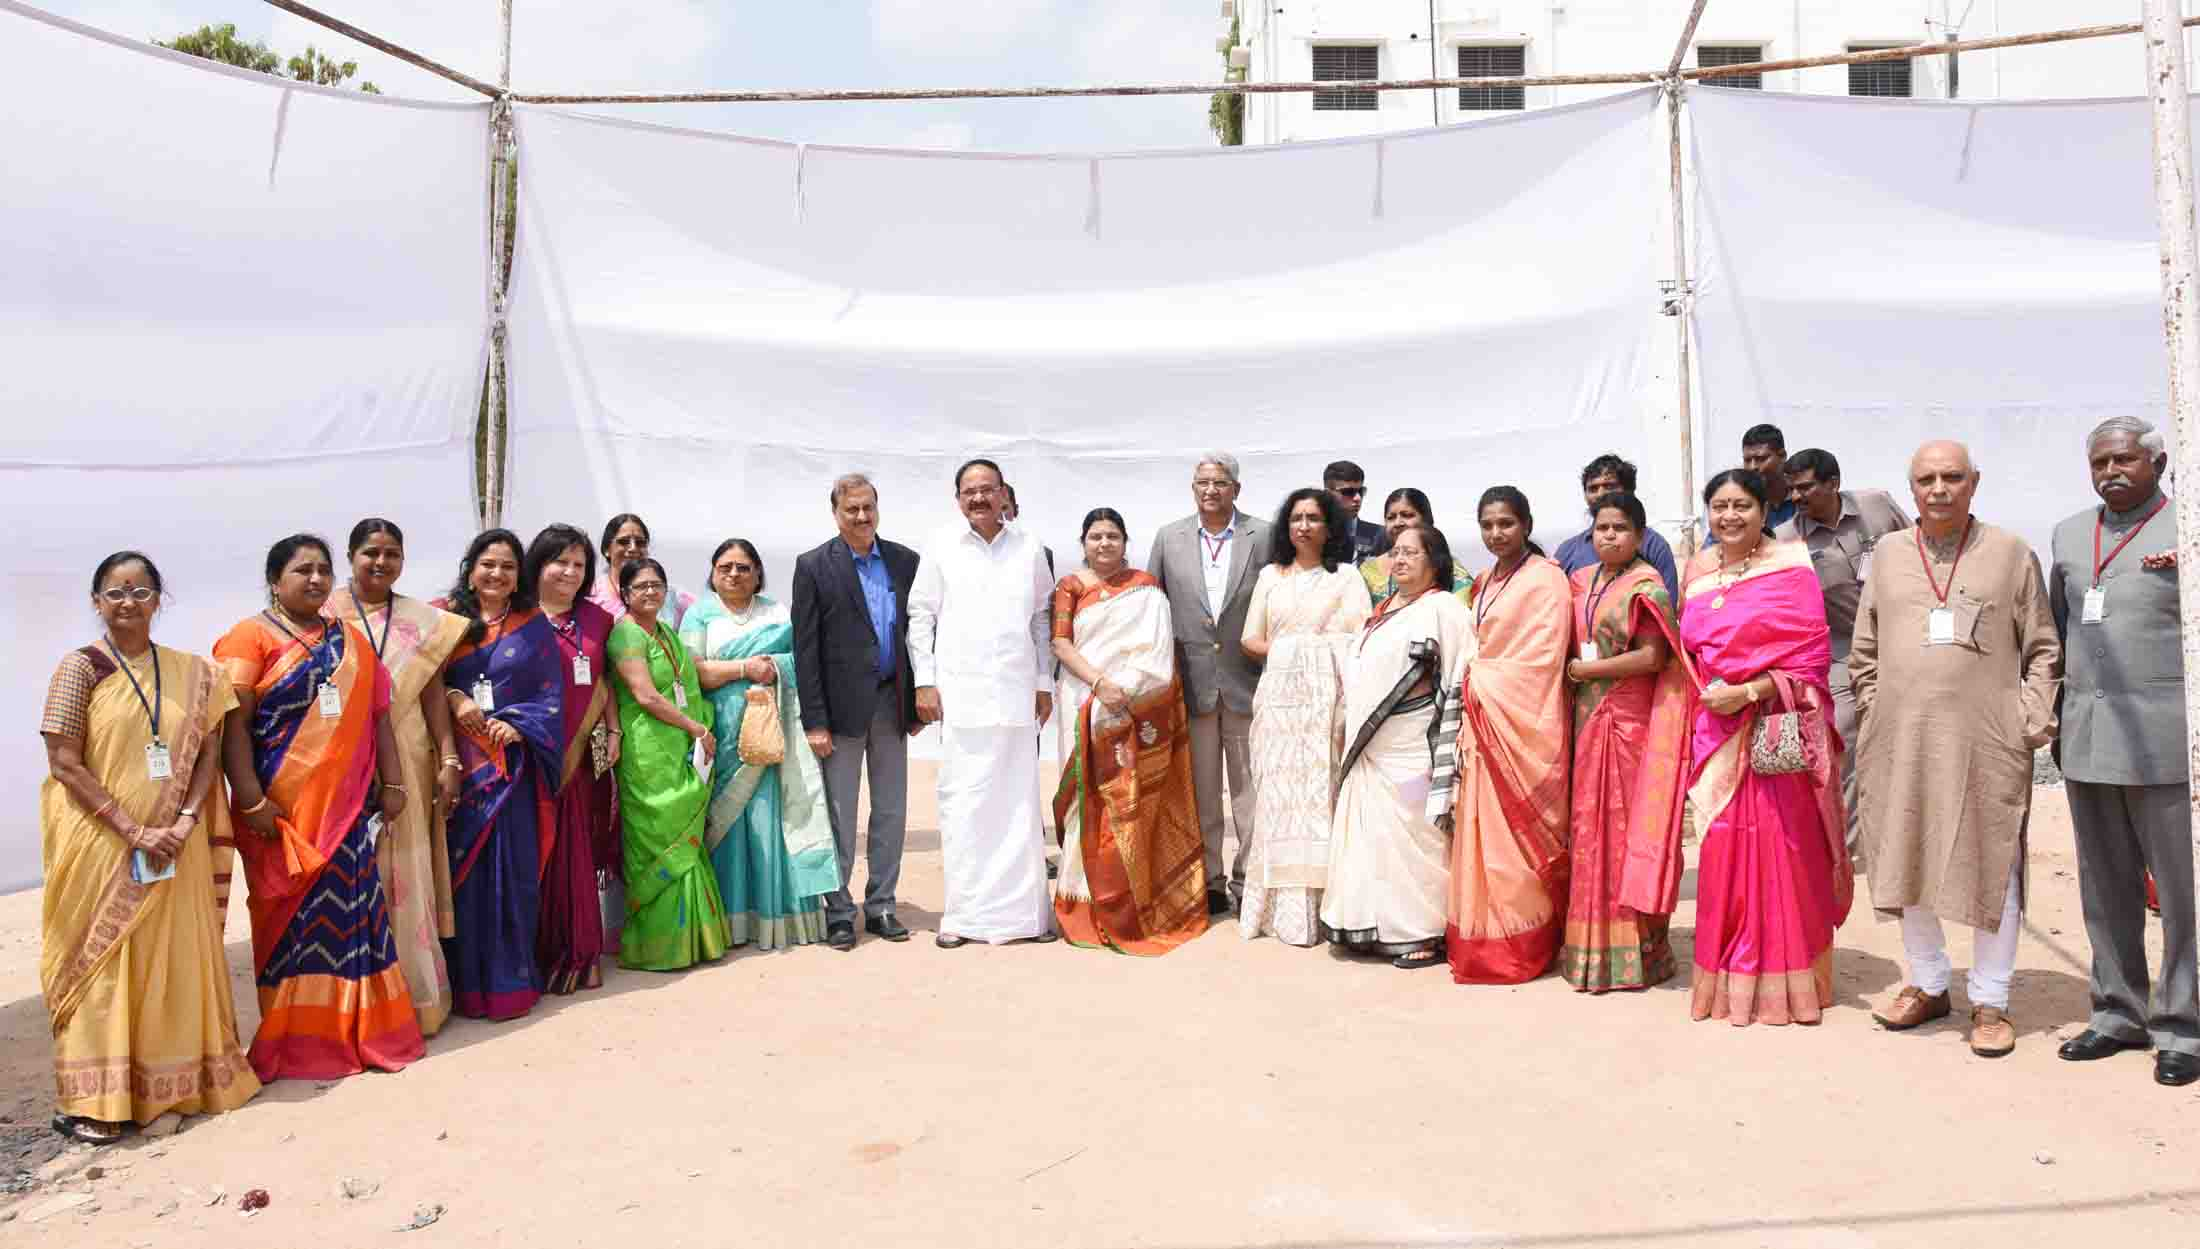 The Vice President, Shri M. Venkaiah Naidu in a group photograph at the Women's Day celebrations, organised by Durgabai Deshmukh Mahila Sabha (formerly Andhra Mahila Sabha) – P.Obul Reddy Public School, in Hyderabad on March 08, 2020.